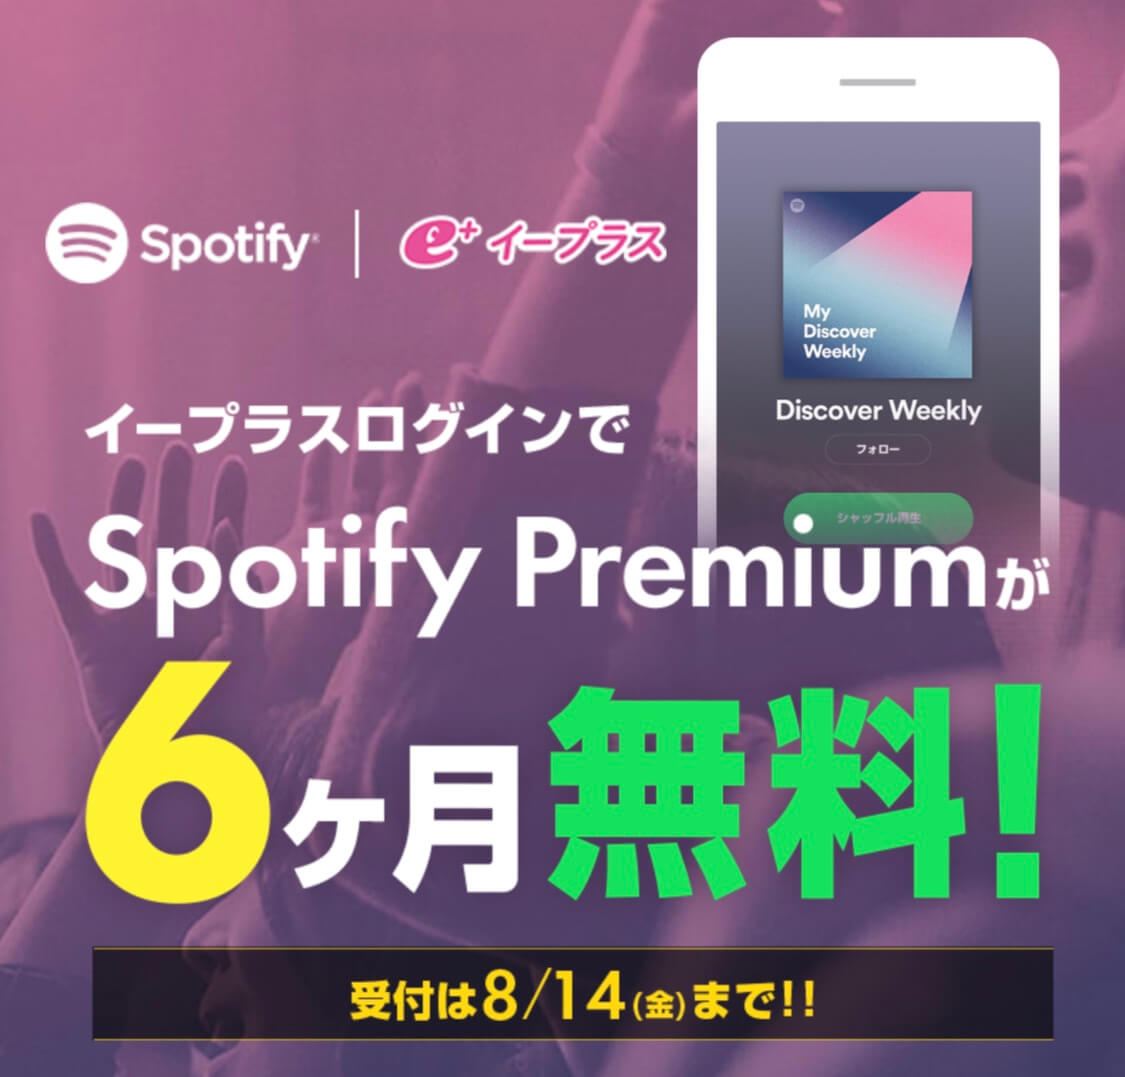 spotify 6ヶ月無料キャンペーン